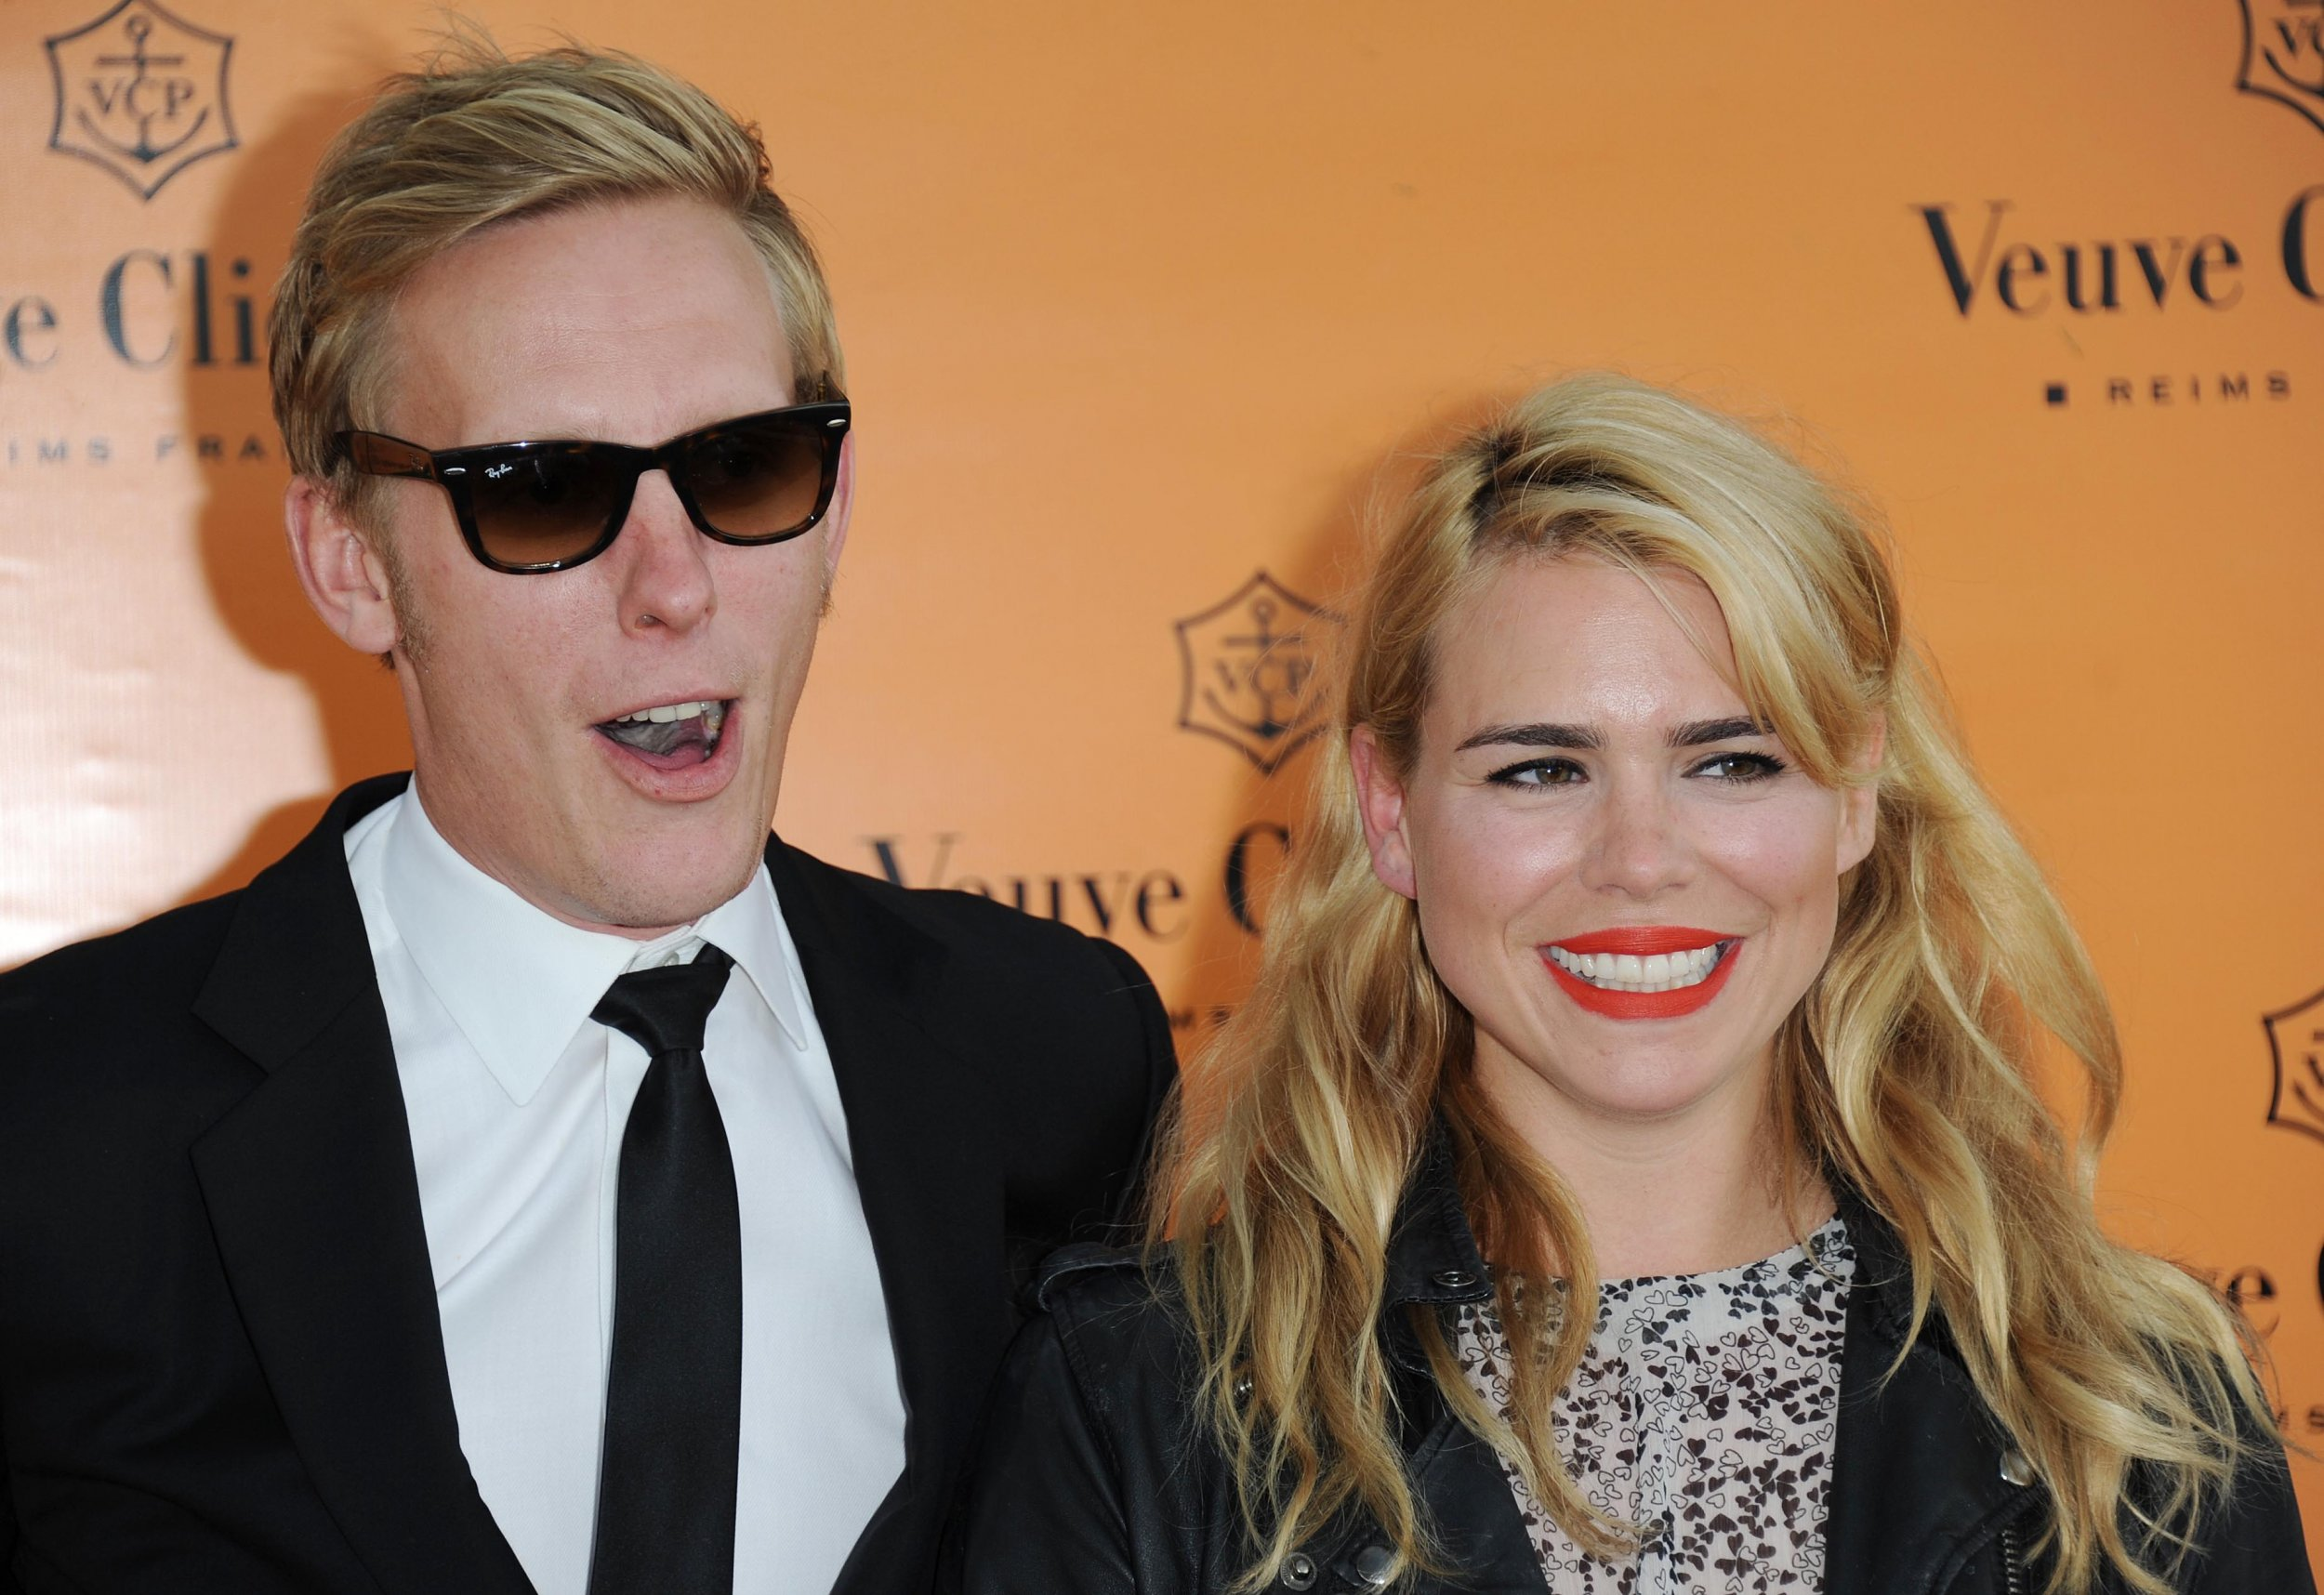 Billie Piper and Laurence Fox split